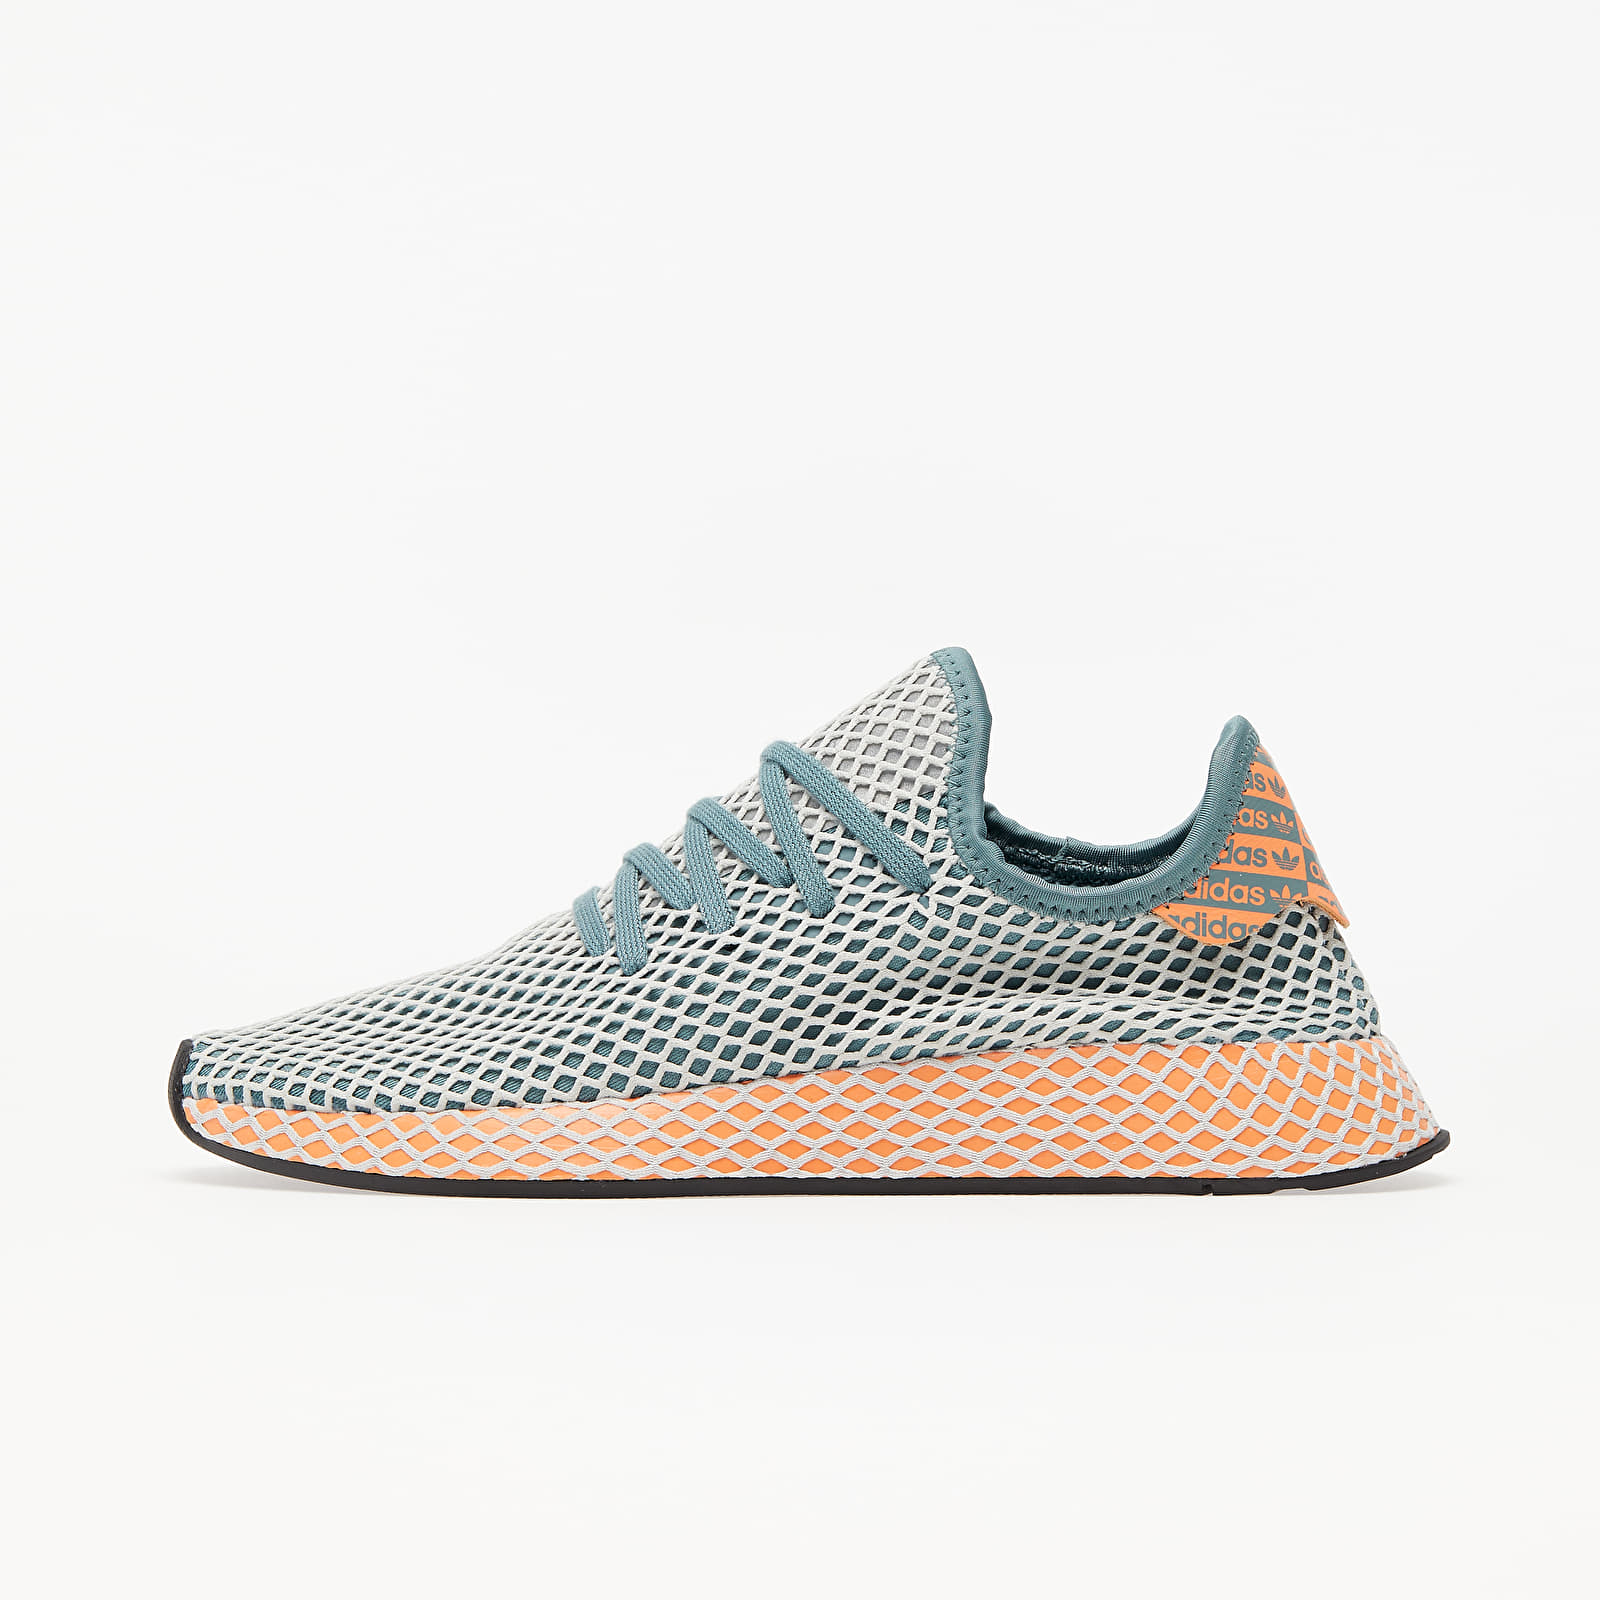 Men's shoes adidas Deerupt Runner Raw Green/ Grey One/ Amber Tint